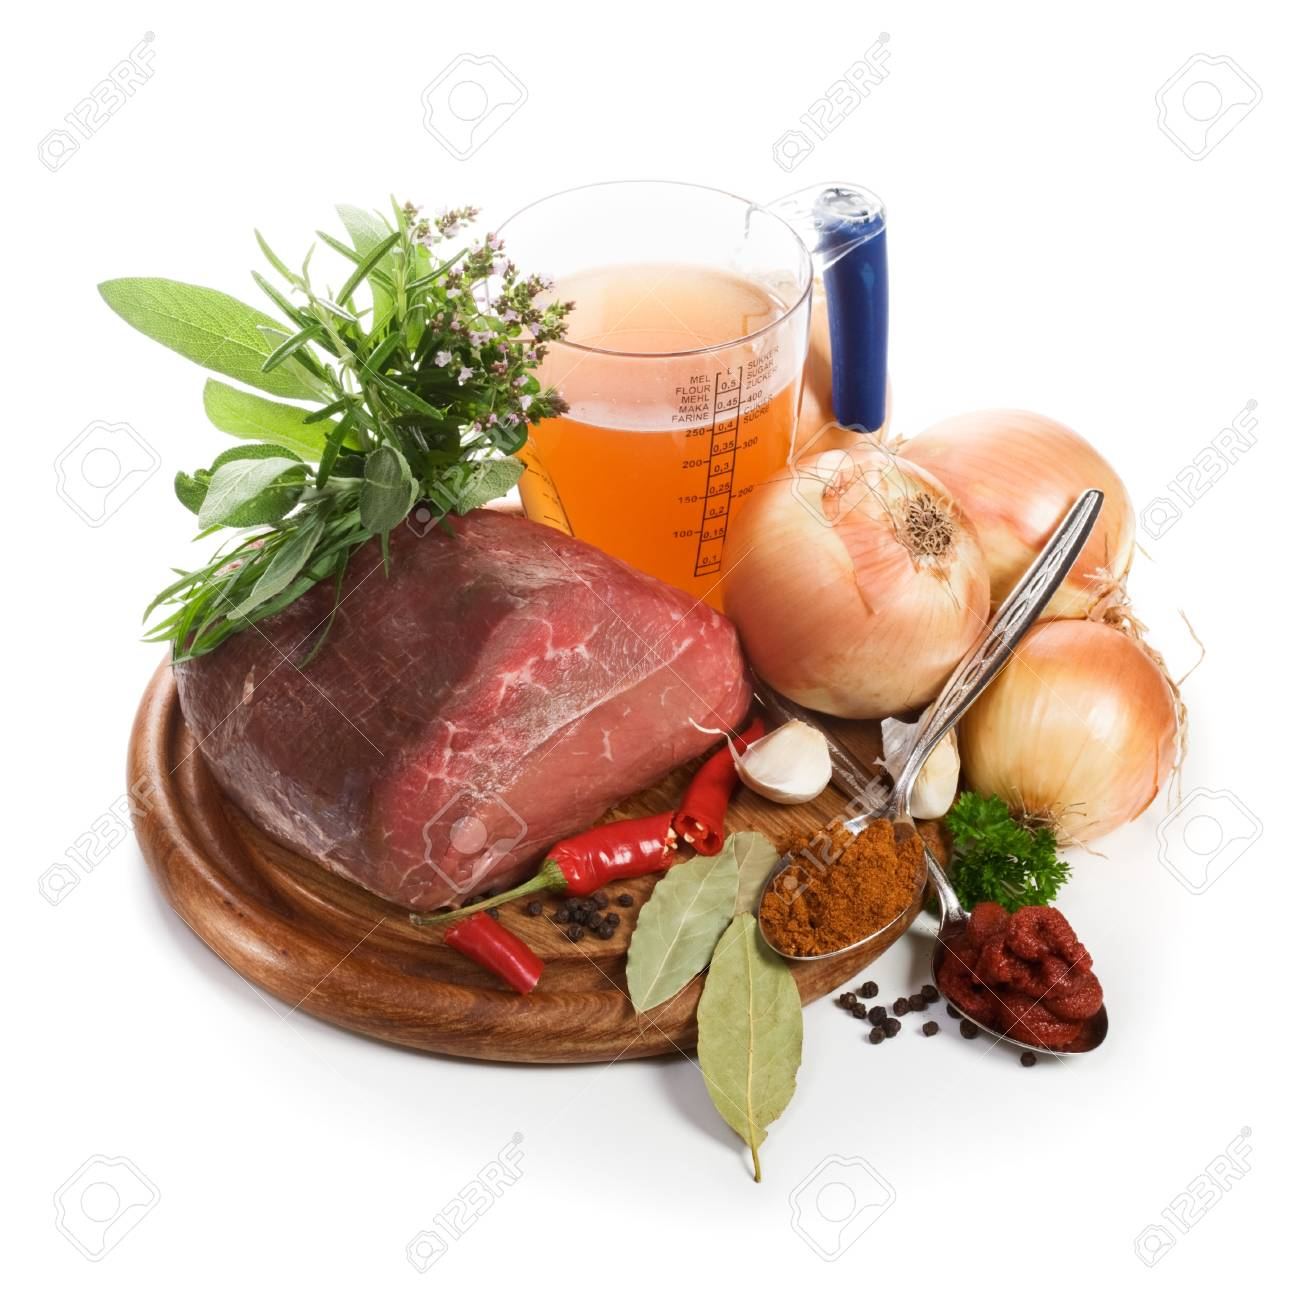 Meat and ingredients for goulash on chopping board, close-up, white background Stock Photo - 15589608